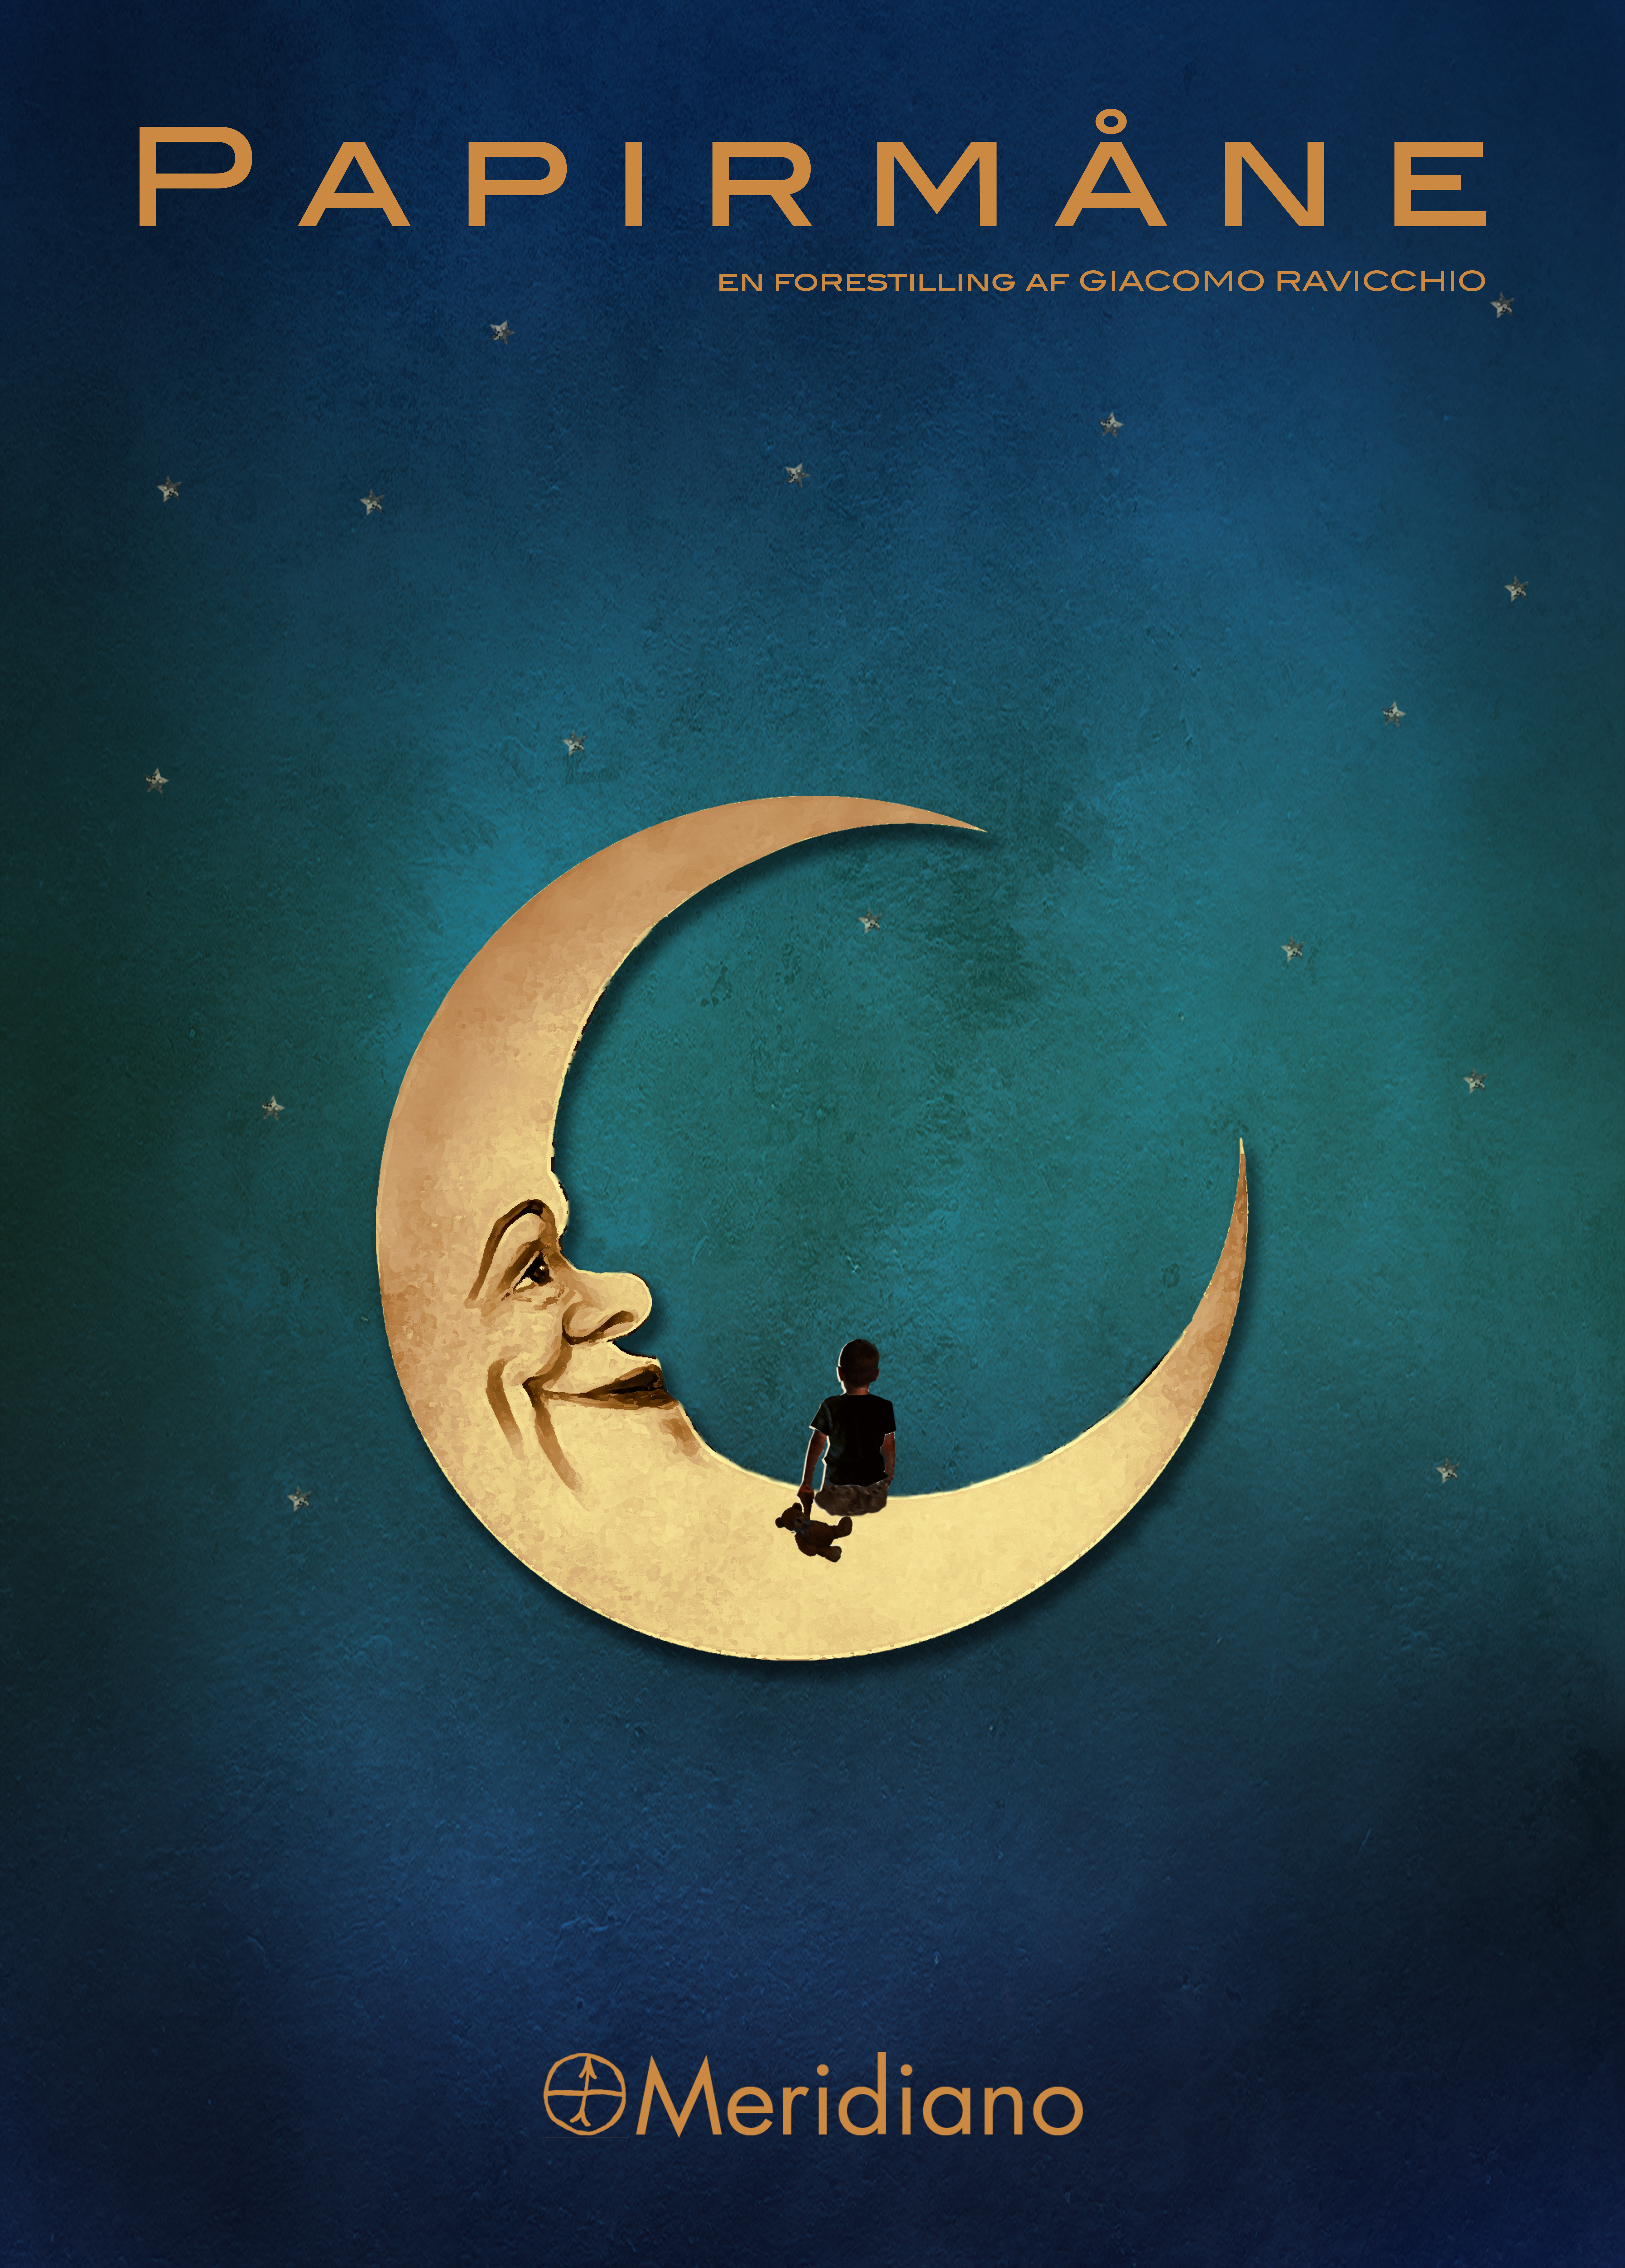 master POSTER PAPER MOON